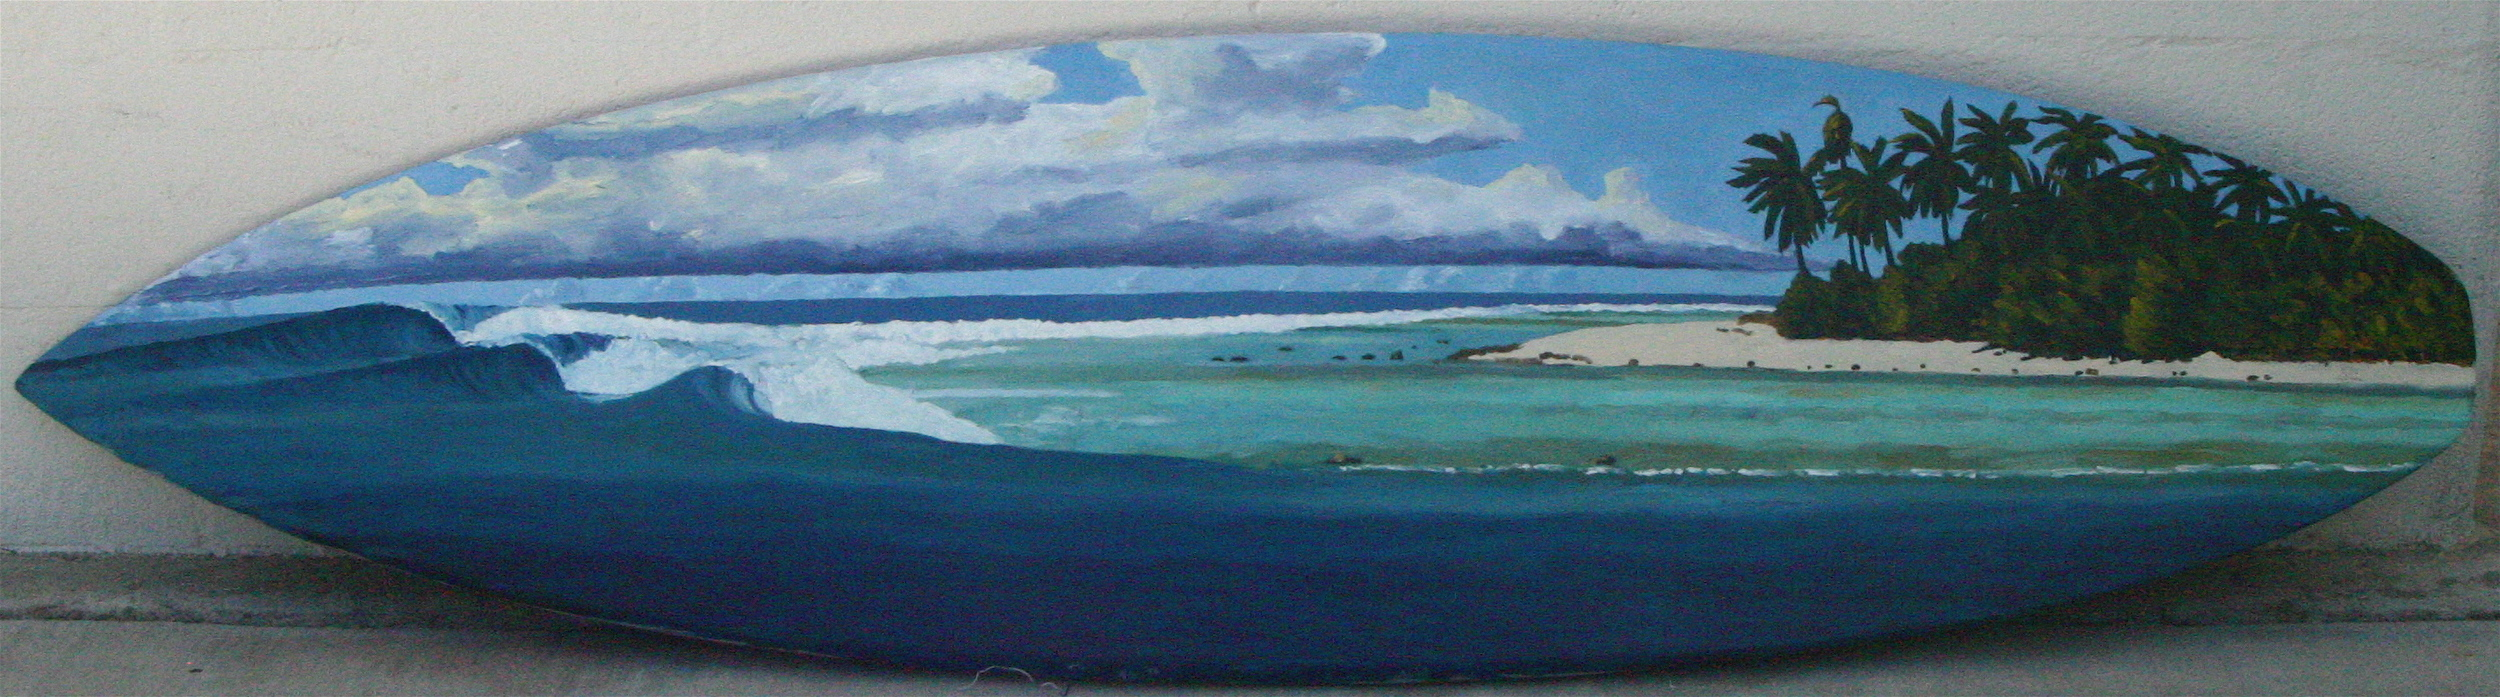 """""""Southern Atoll, Maldives"""" oil paint on surfboard  collection of the artist"""